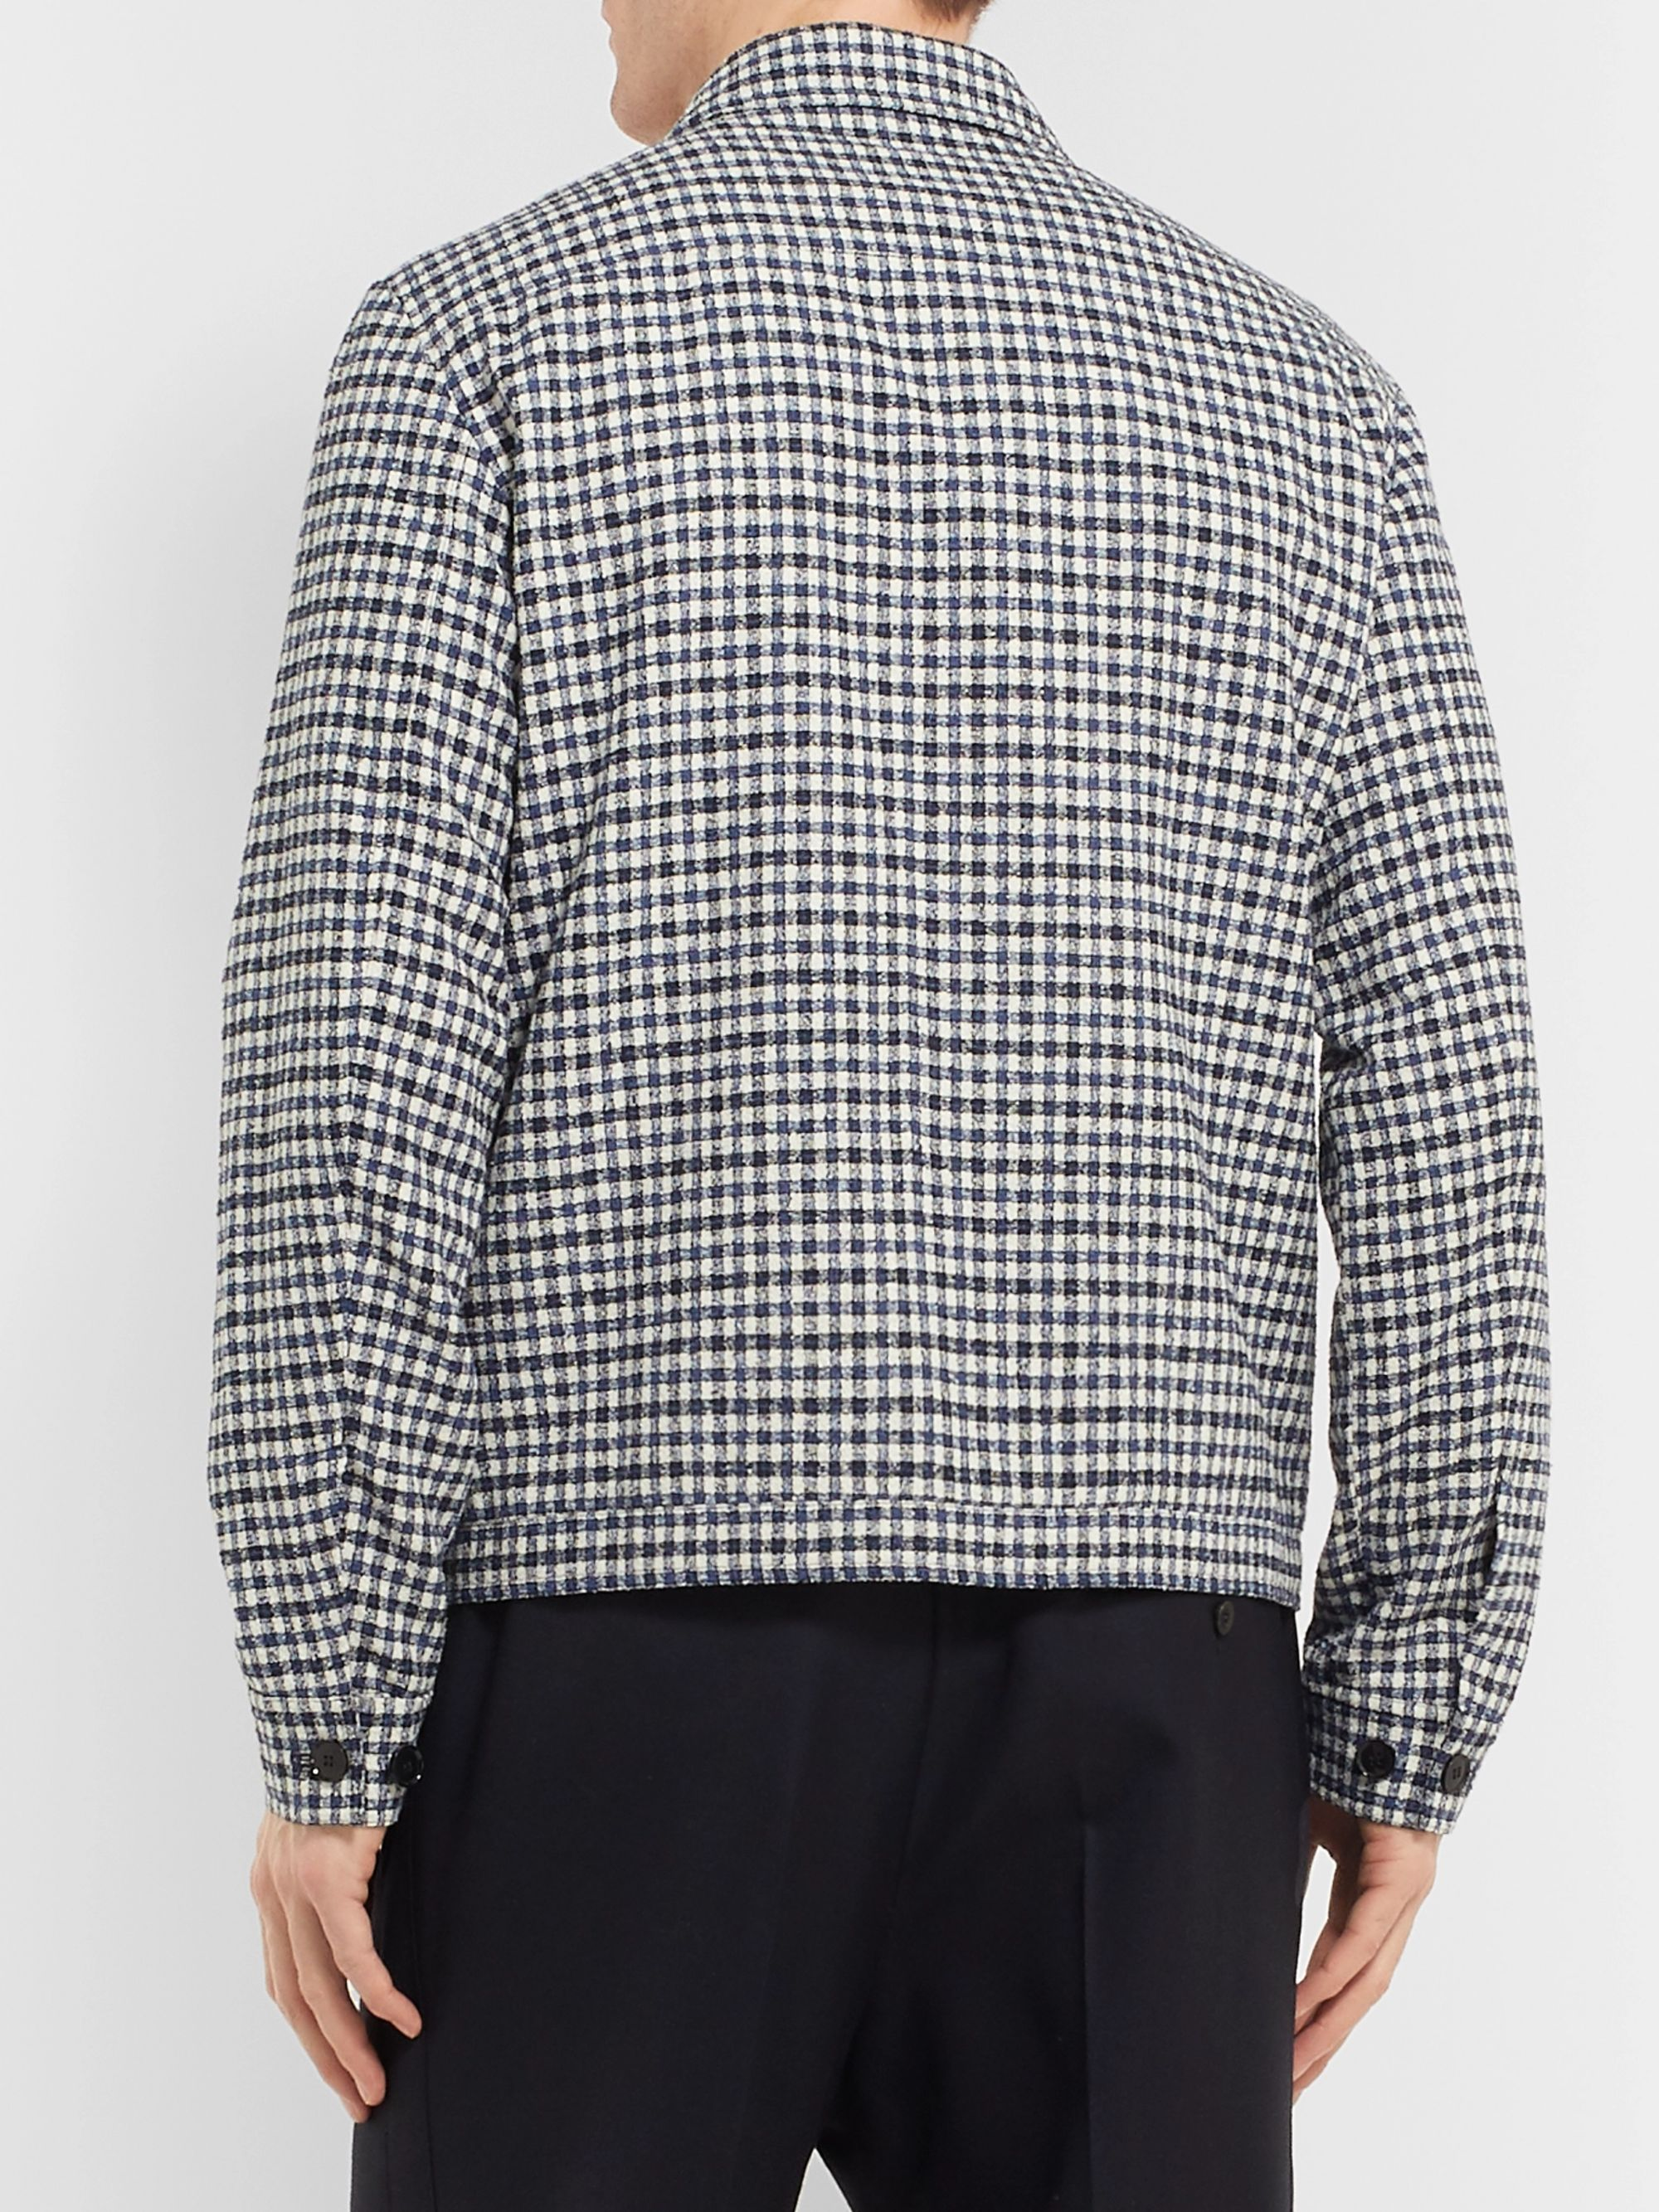 Mr P. Checked Cotton-Blend Bouclé Jacket